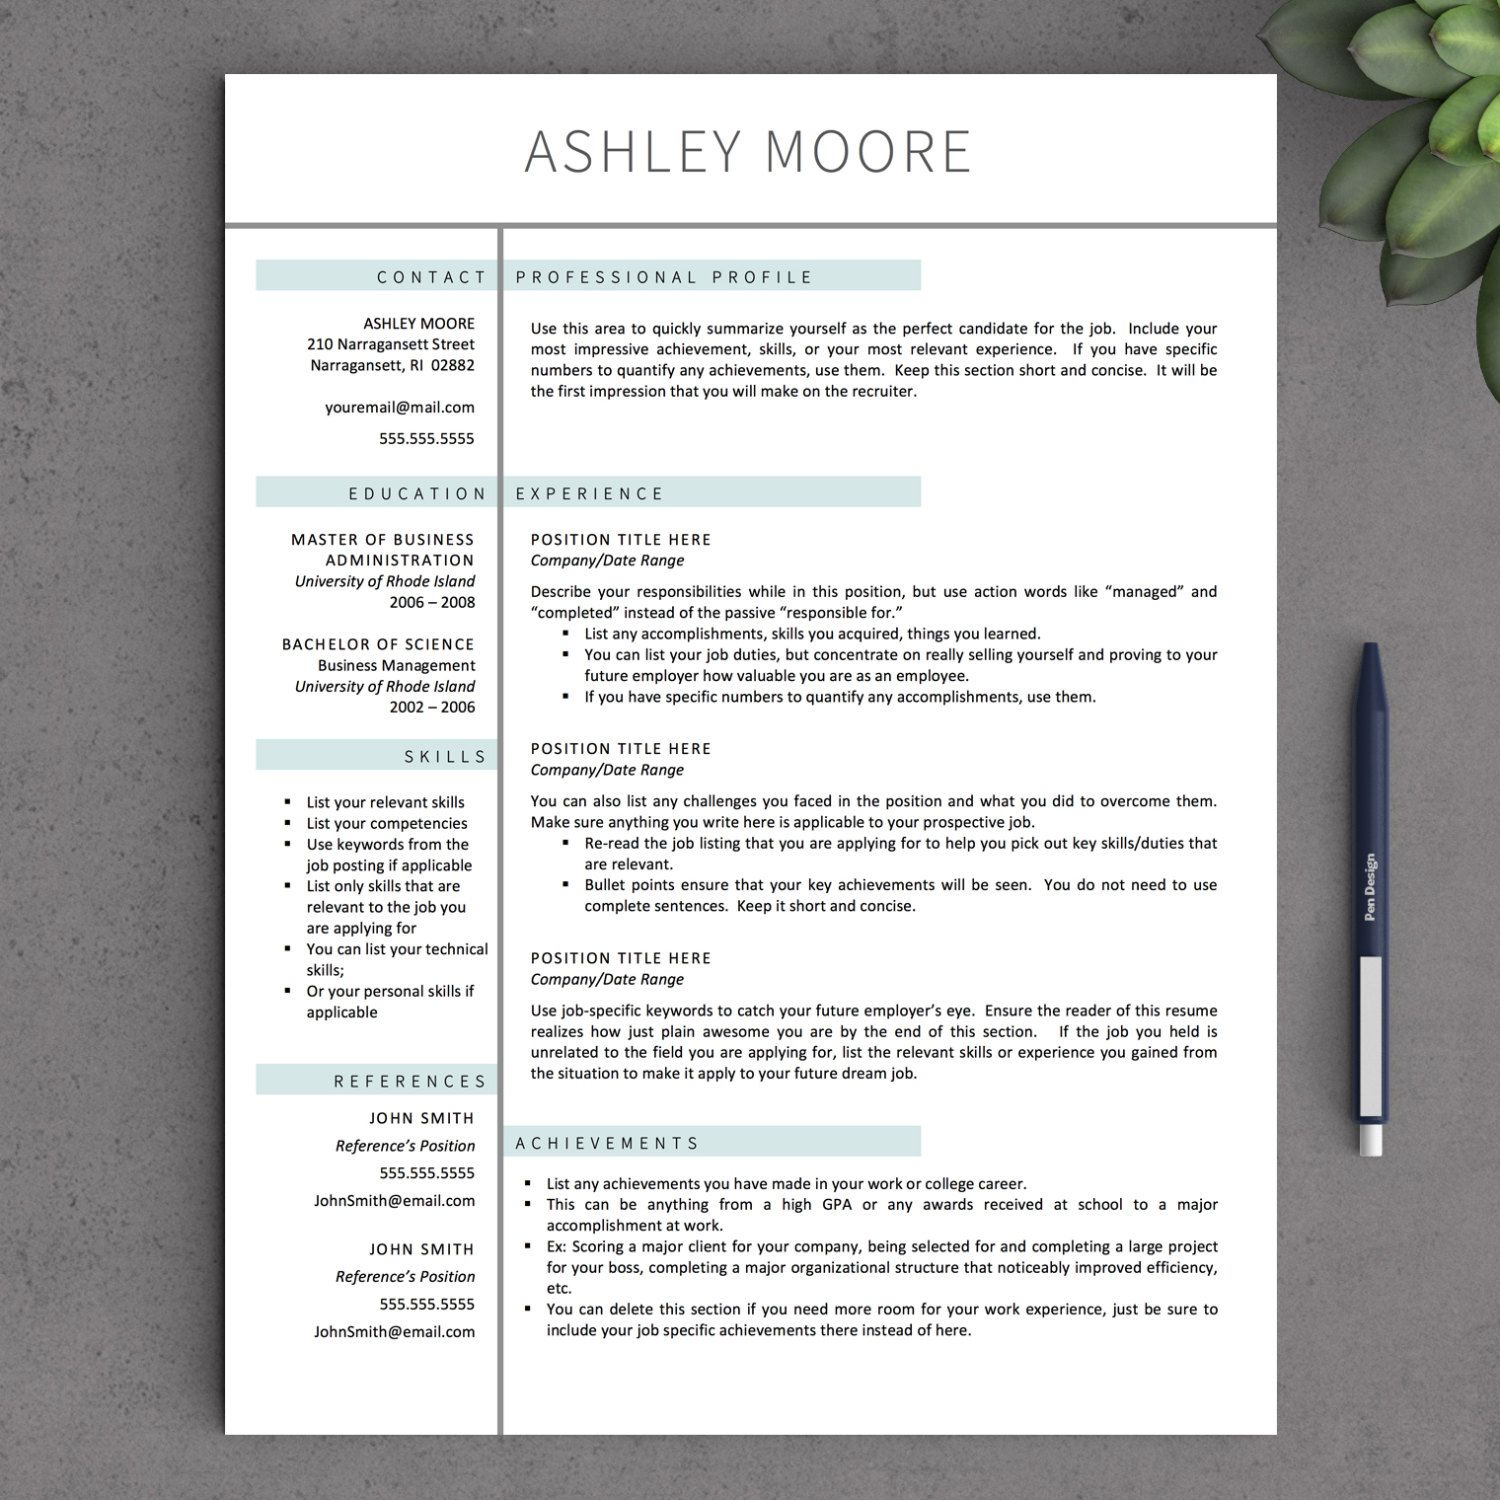 apple pages resume template download apple pages resume template download apple pages resume templates free - Resume Template Download Mac